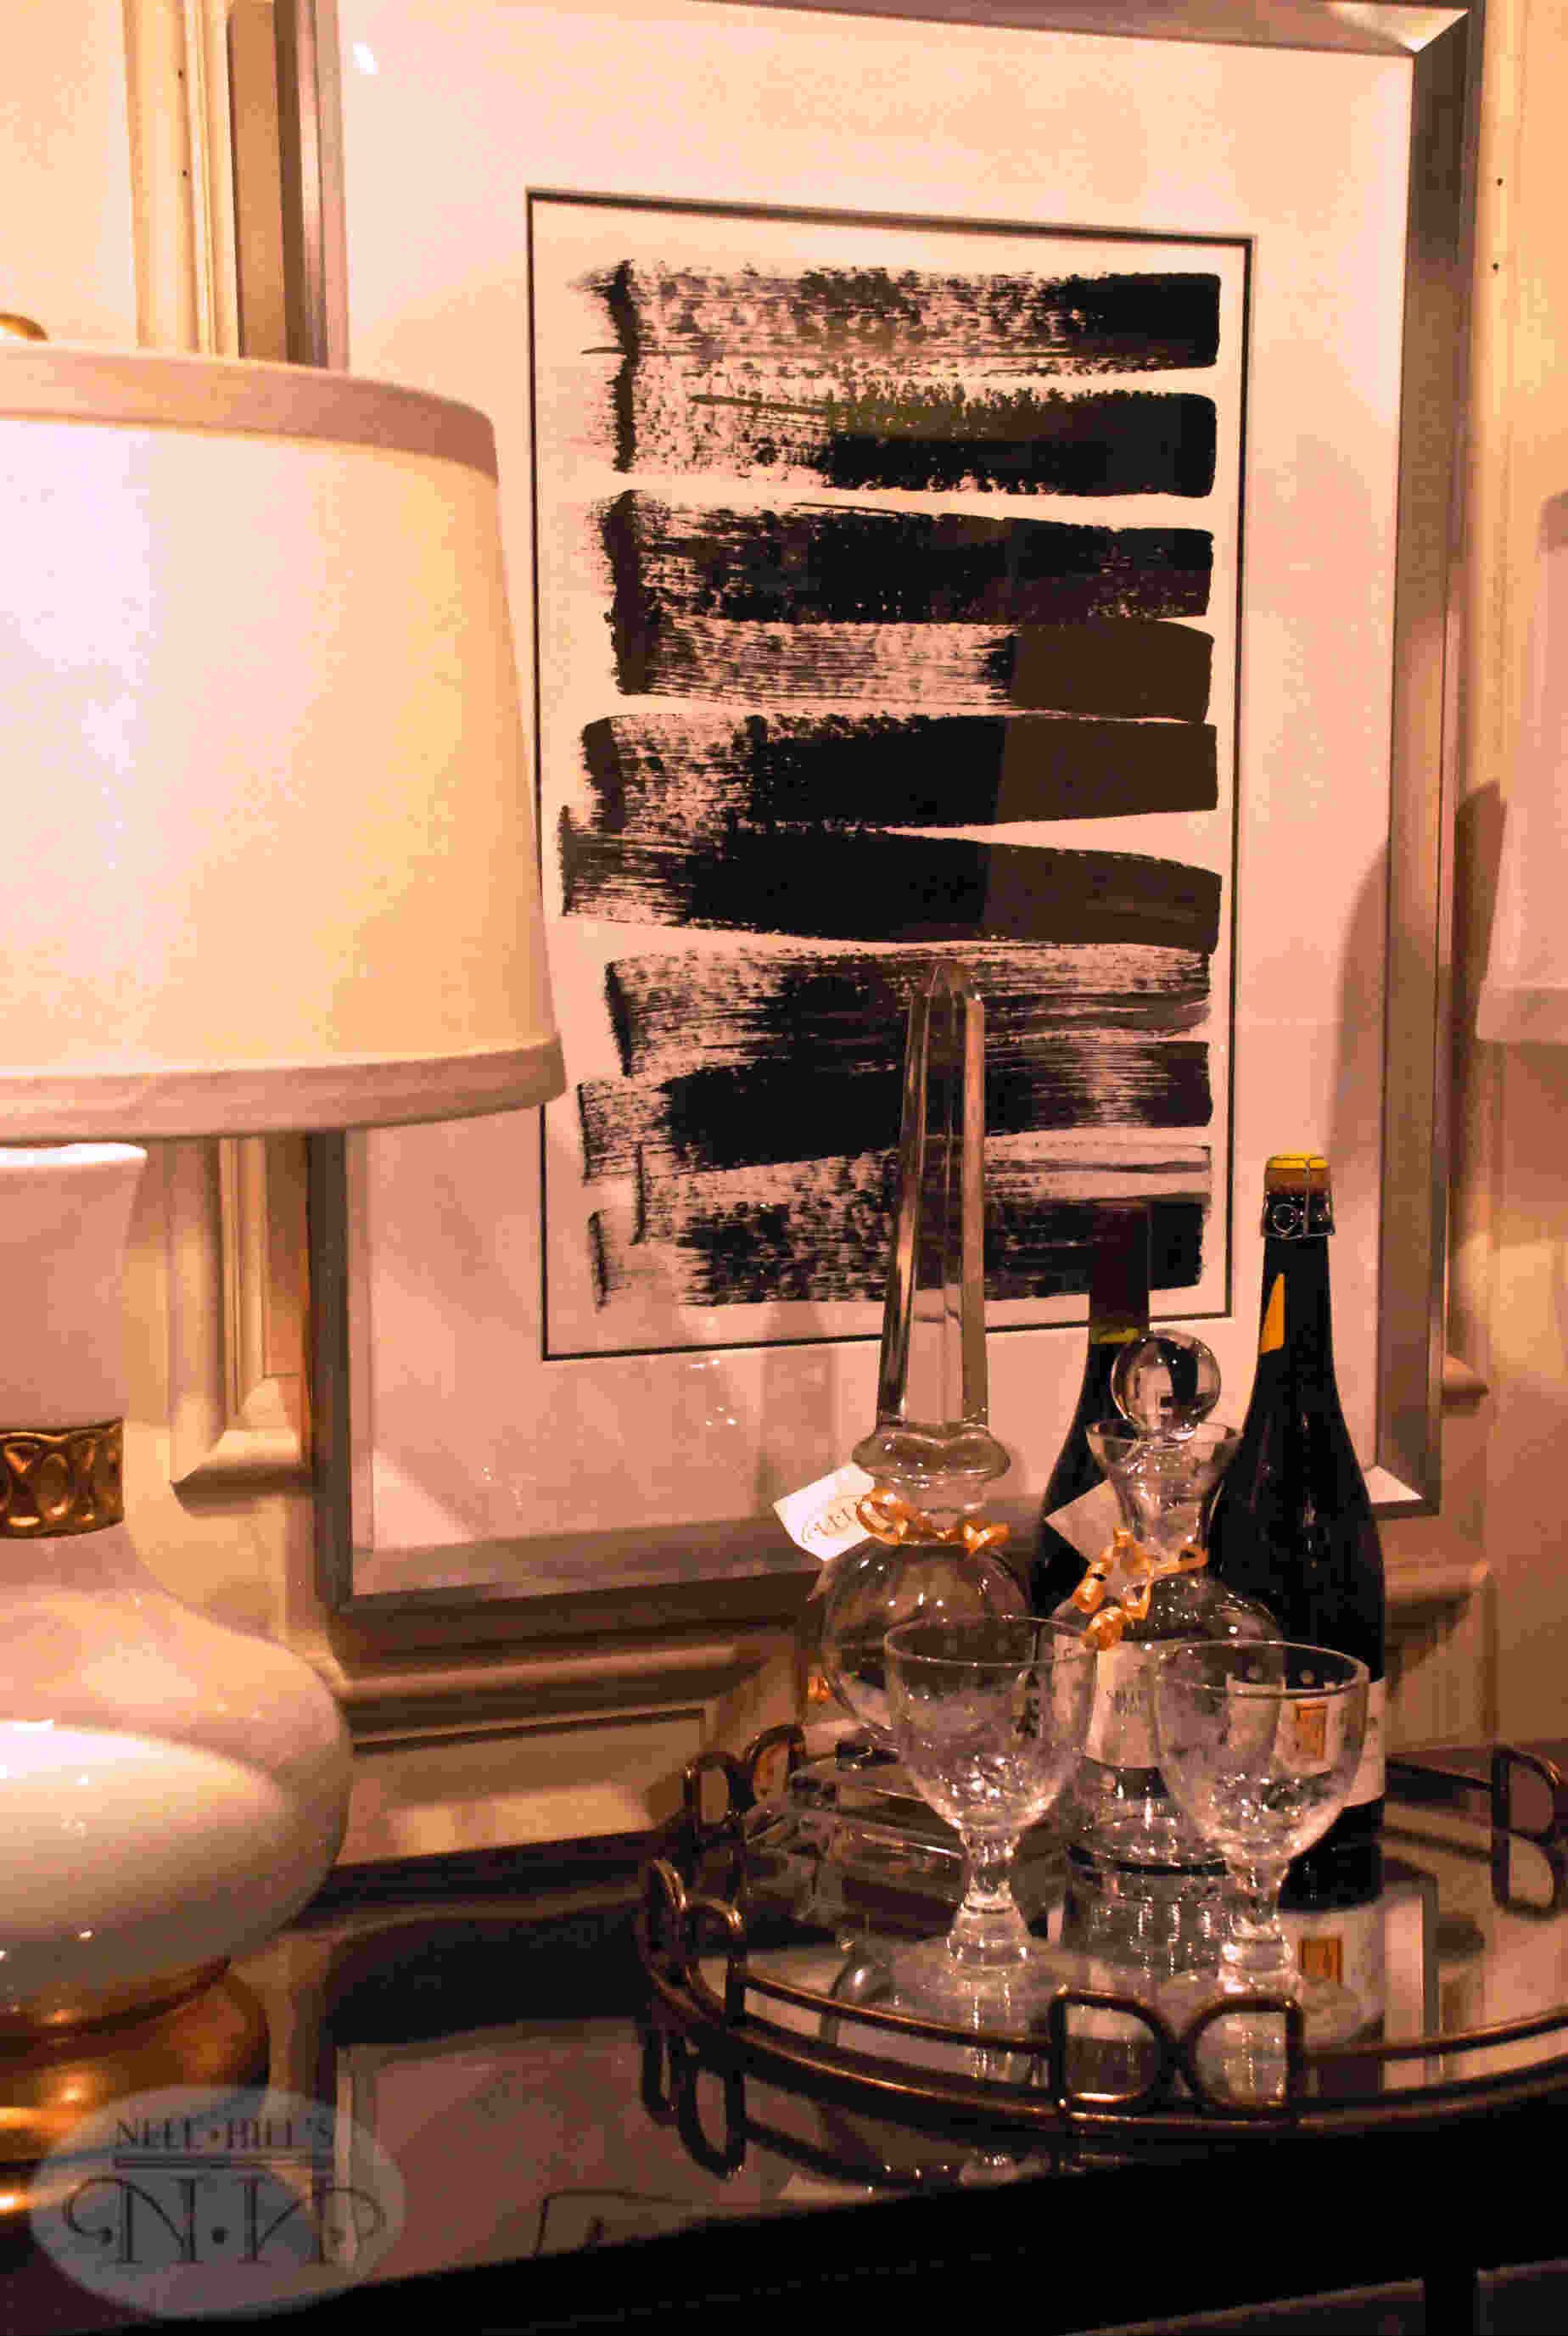 white and gold table lamp make a little bar